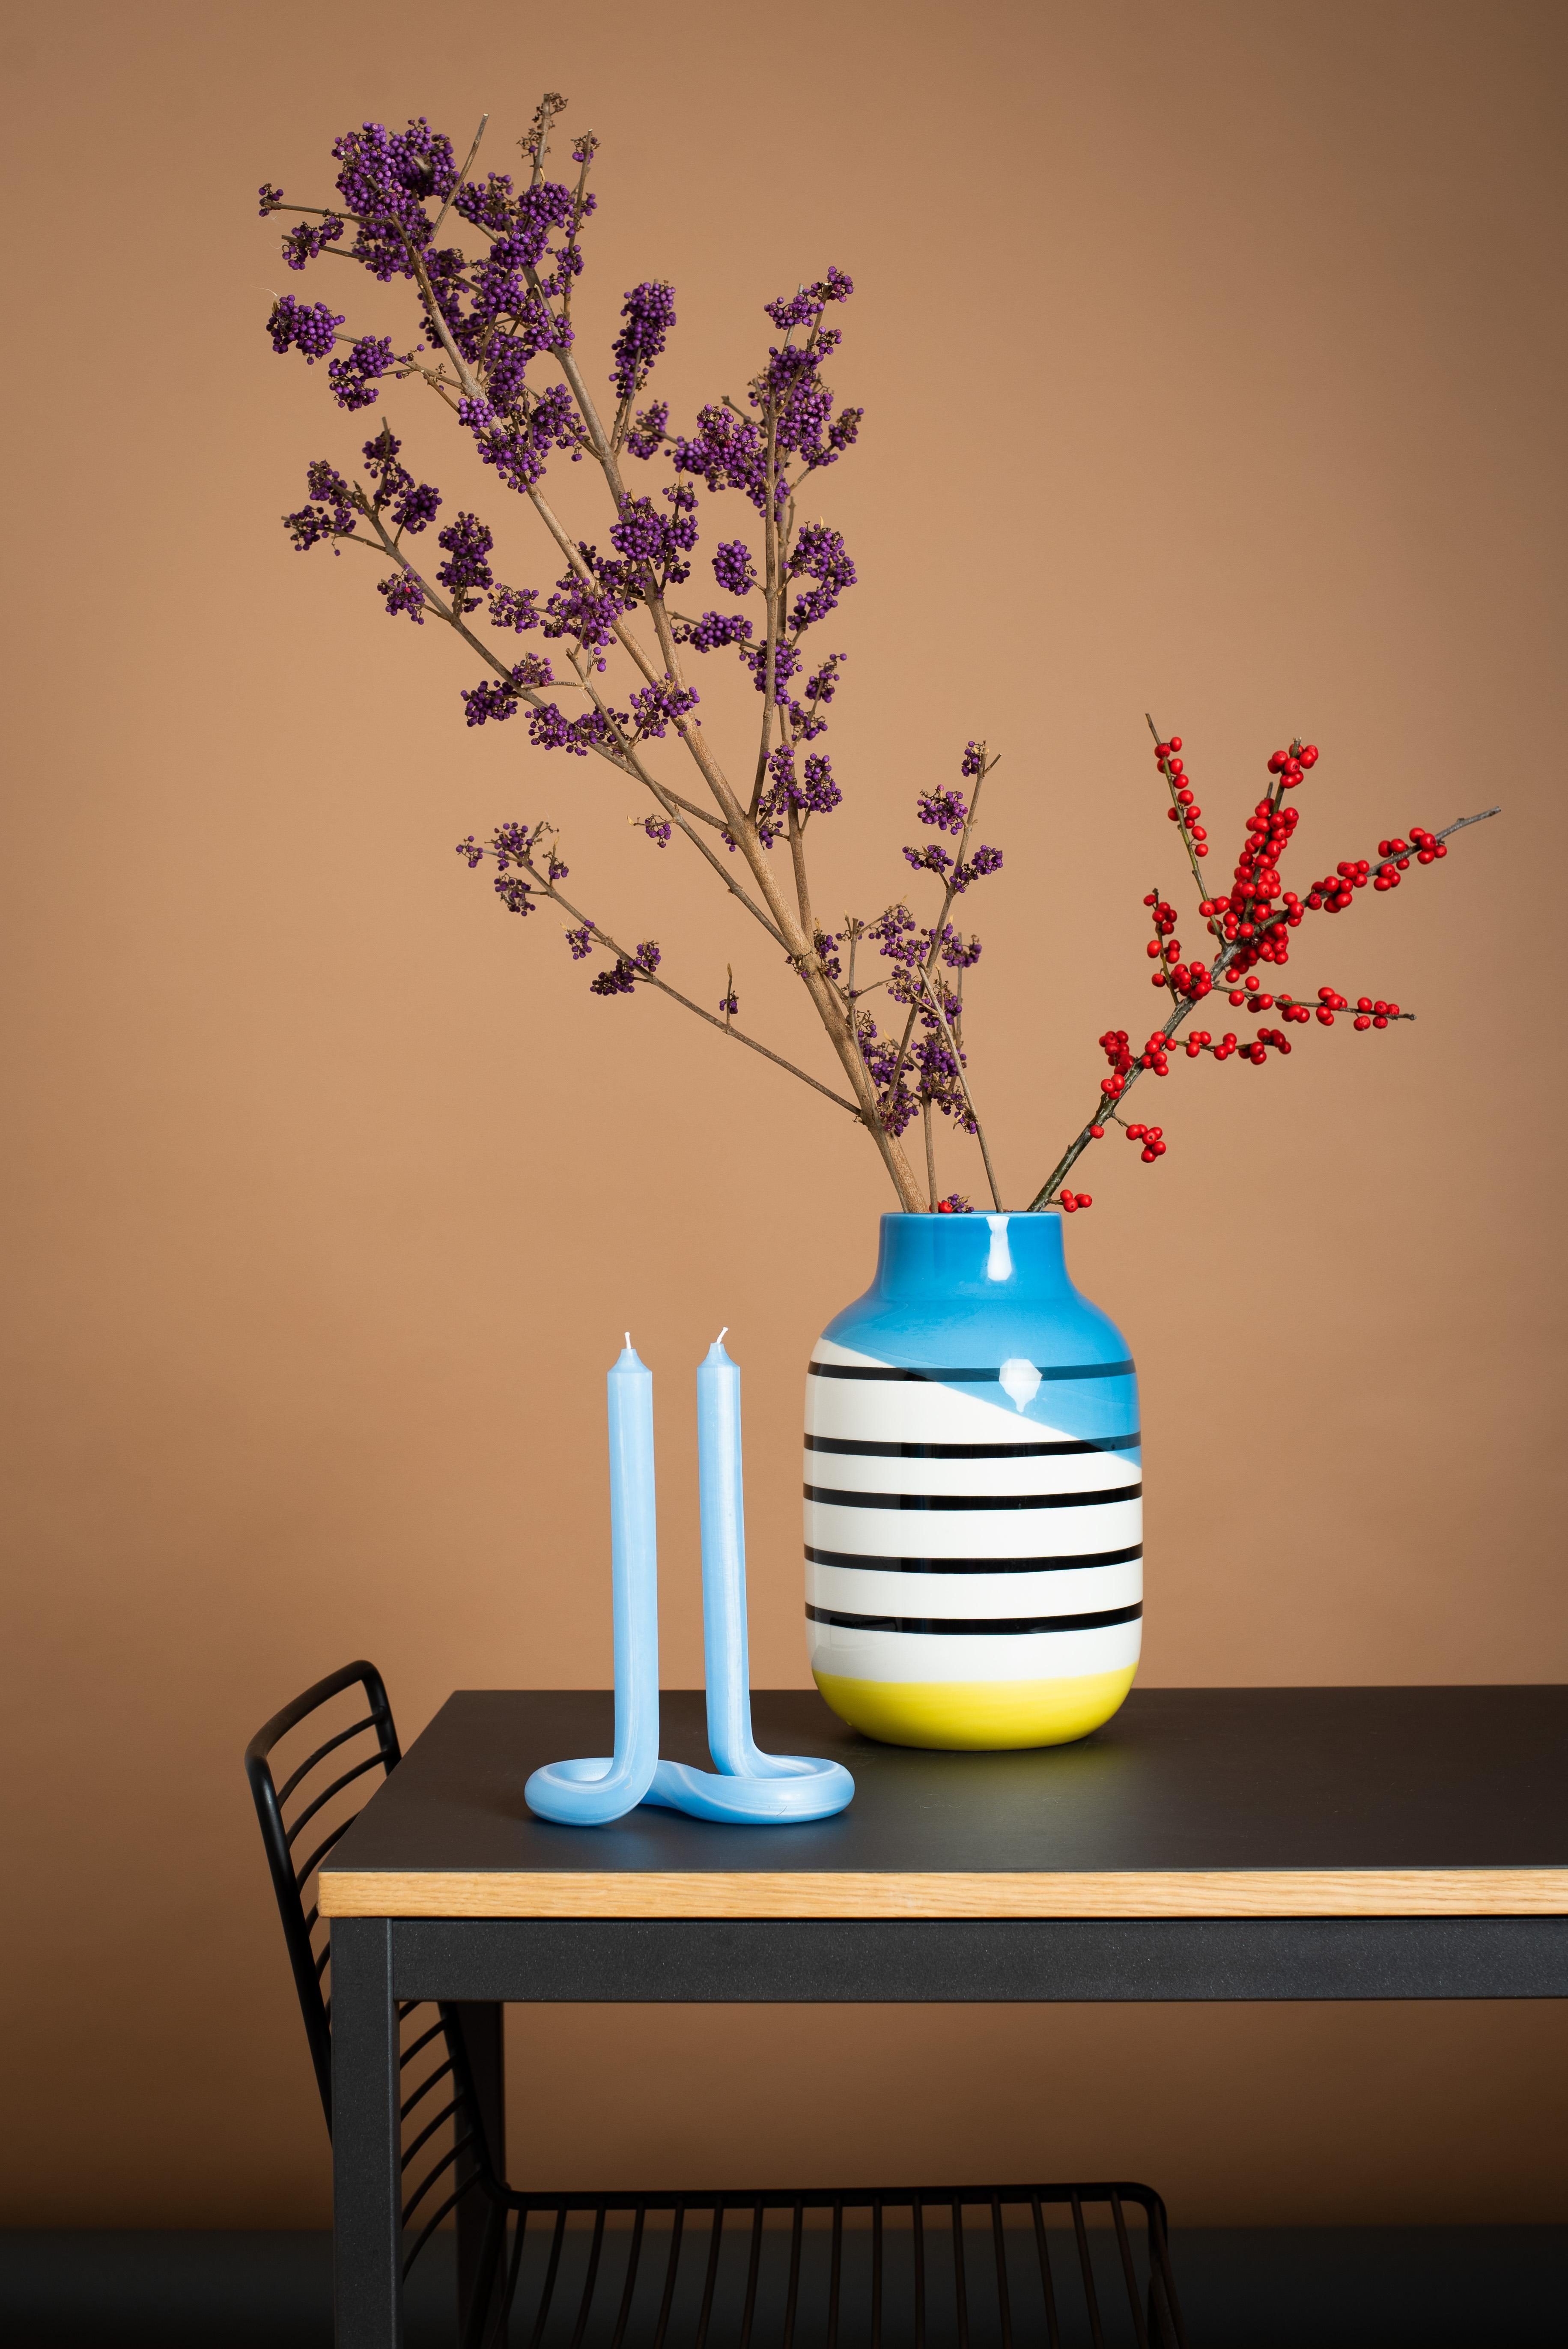 Farbenfrohen Mittwoch! #vase #deko #winterdeko #stillleben #stilllife #decoration #kerze #mystyle #colourfulstyle